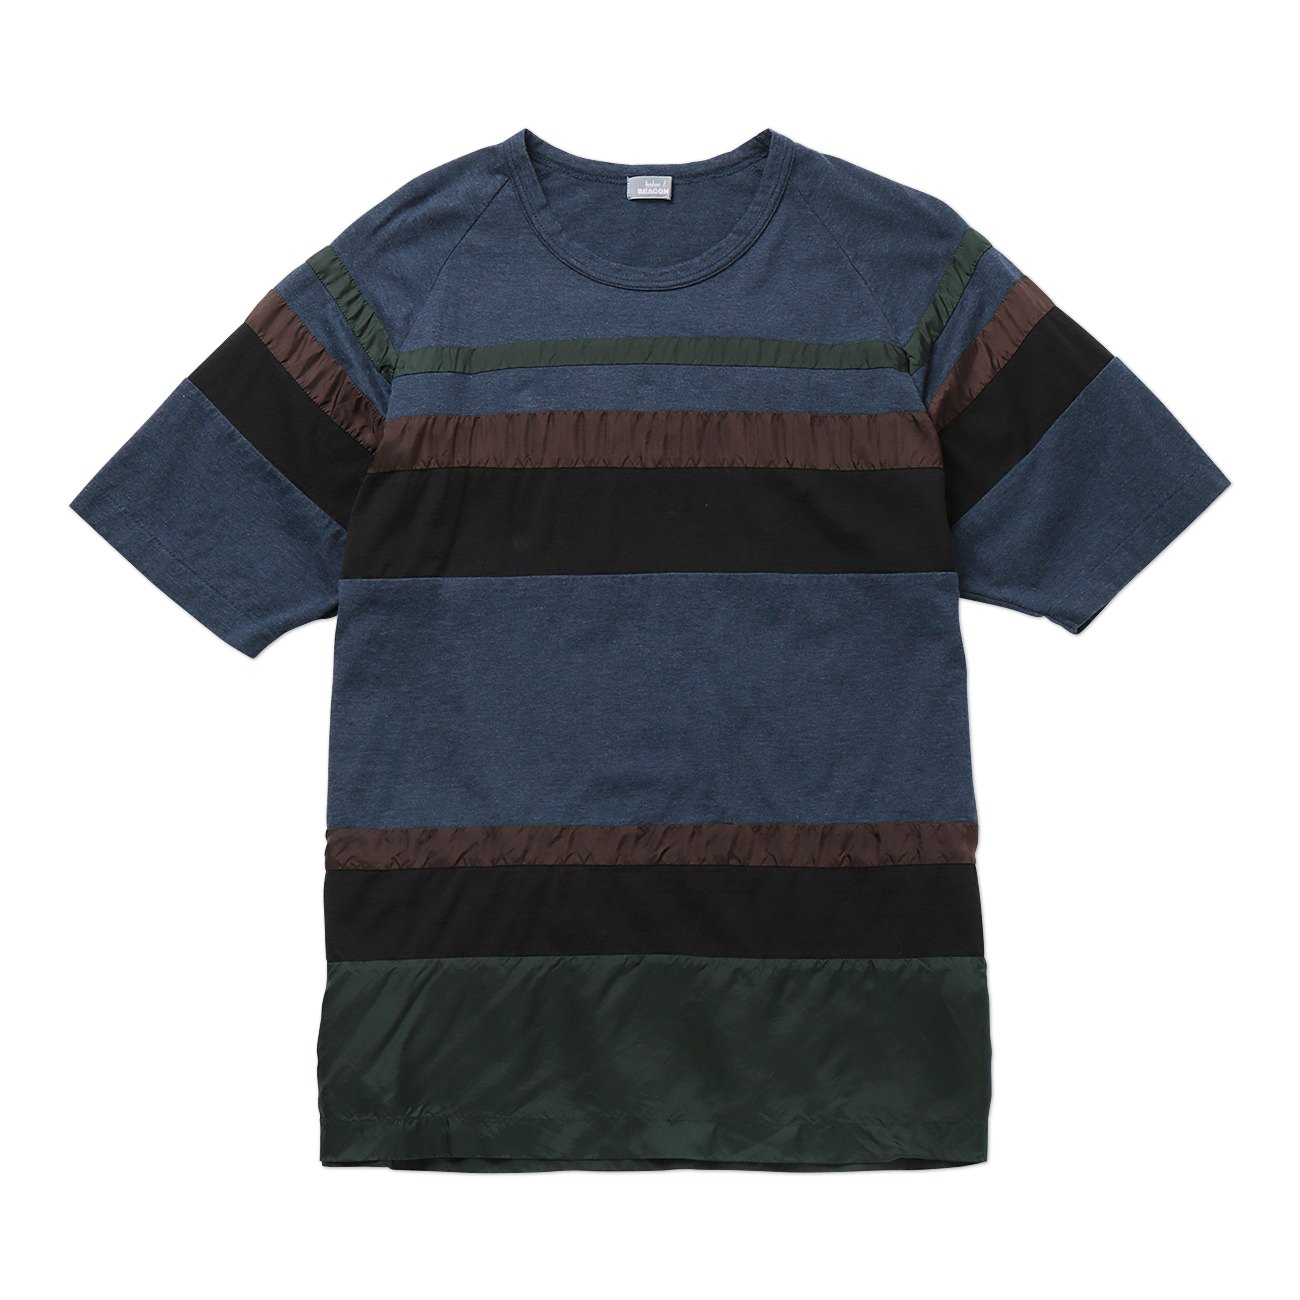 http://store.honeyee.com/products/detail.php?product_id=1412